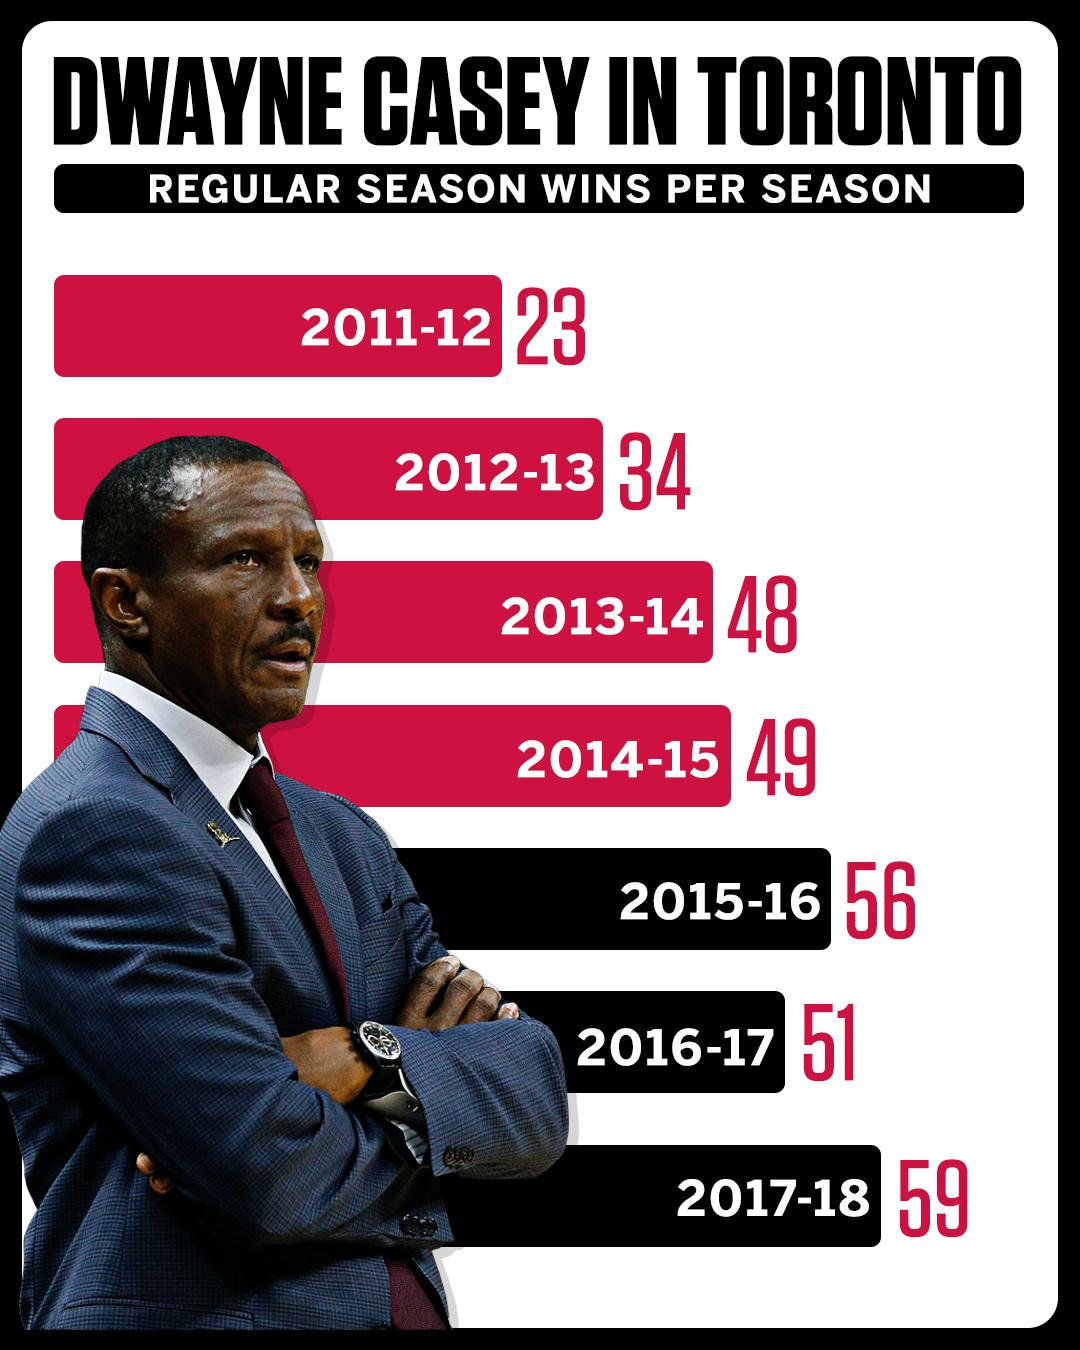 In the Raptors' 23 NBA seasons, they only have 3 50-win seasons.  All came under Dwayne Casey. https://t.co/DfusY8Wele